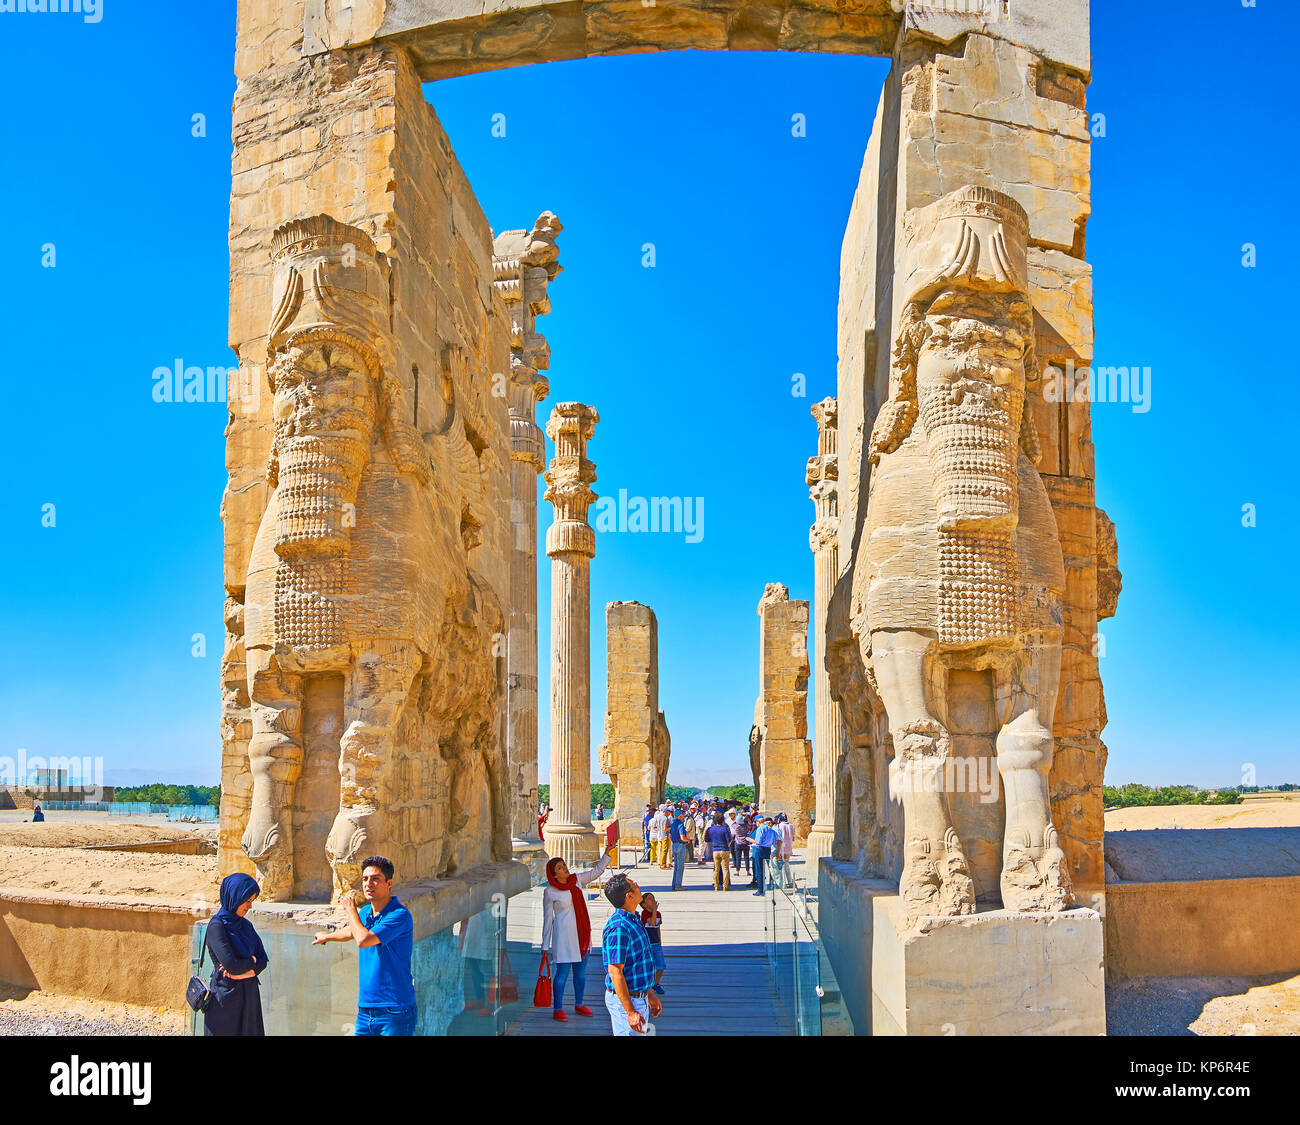 PERSEPOLIS, IRAN - OCTOBER 13, 2017: The giant Lamassu statues (Assyrian deity) decorate the eastern entrance to - Stock Image